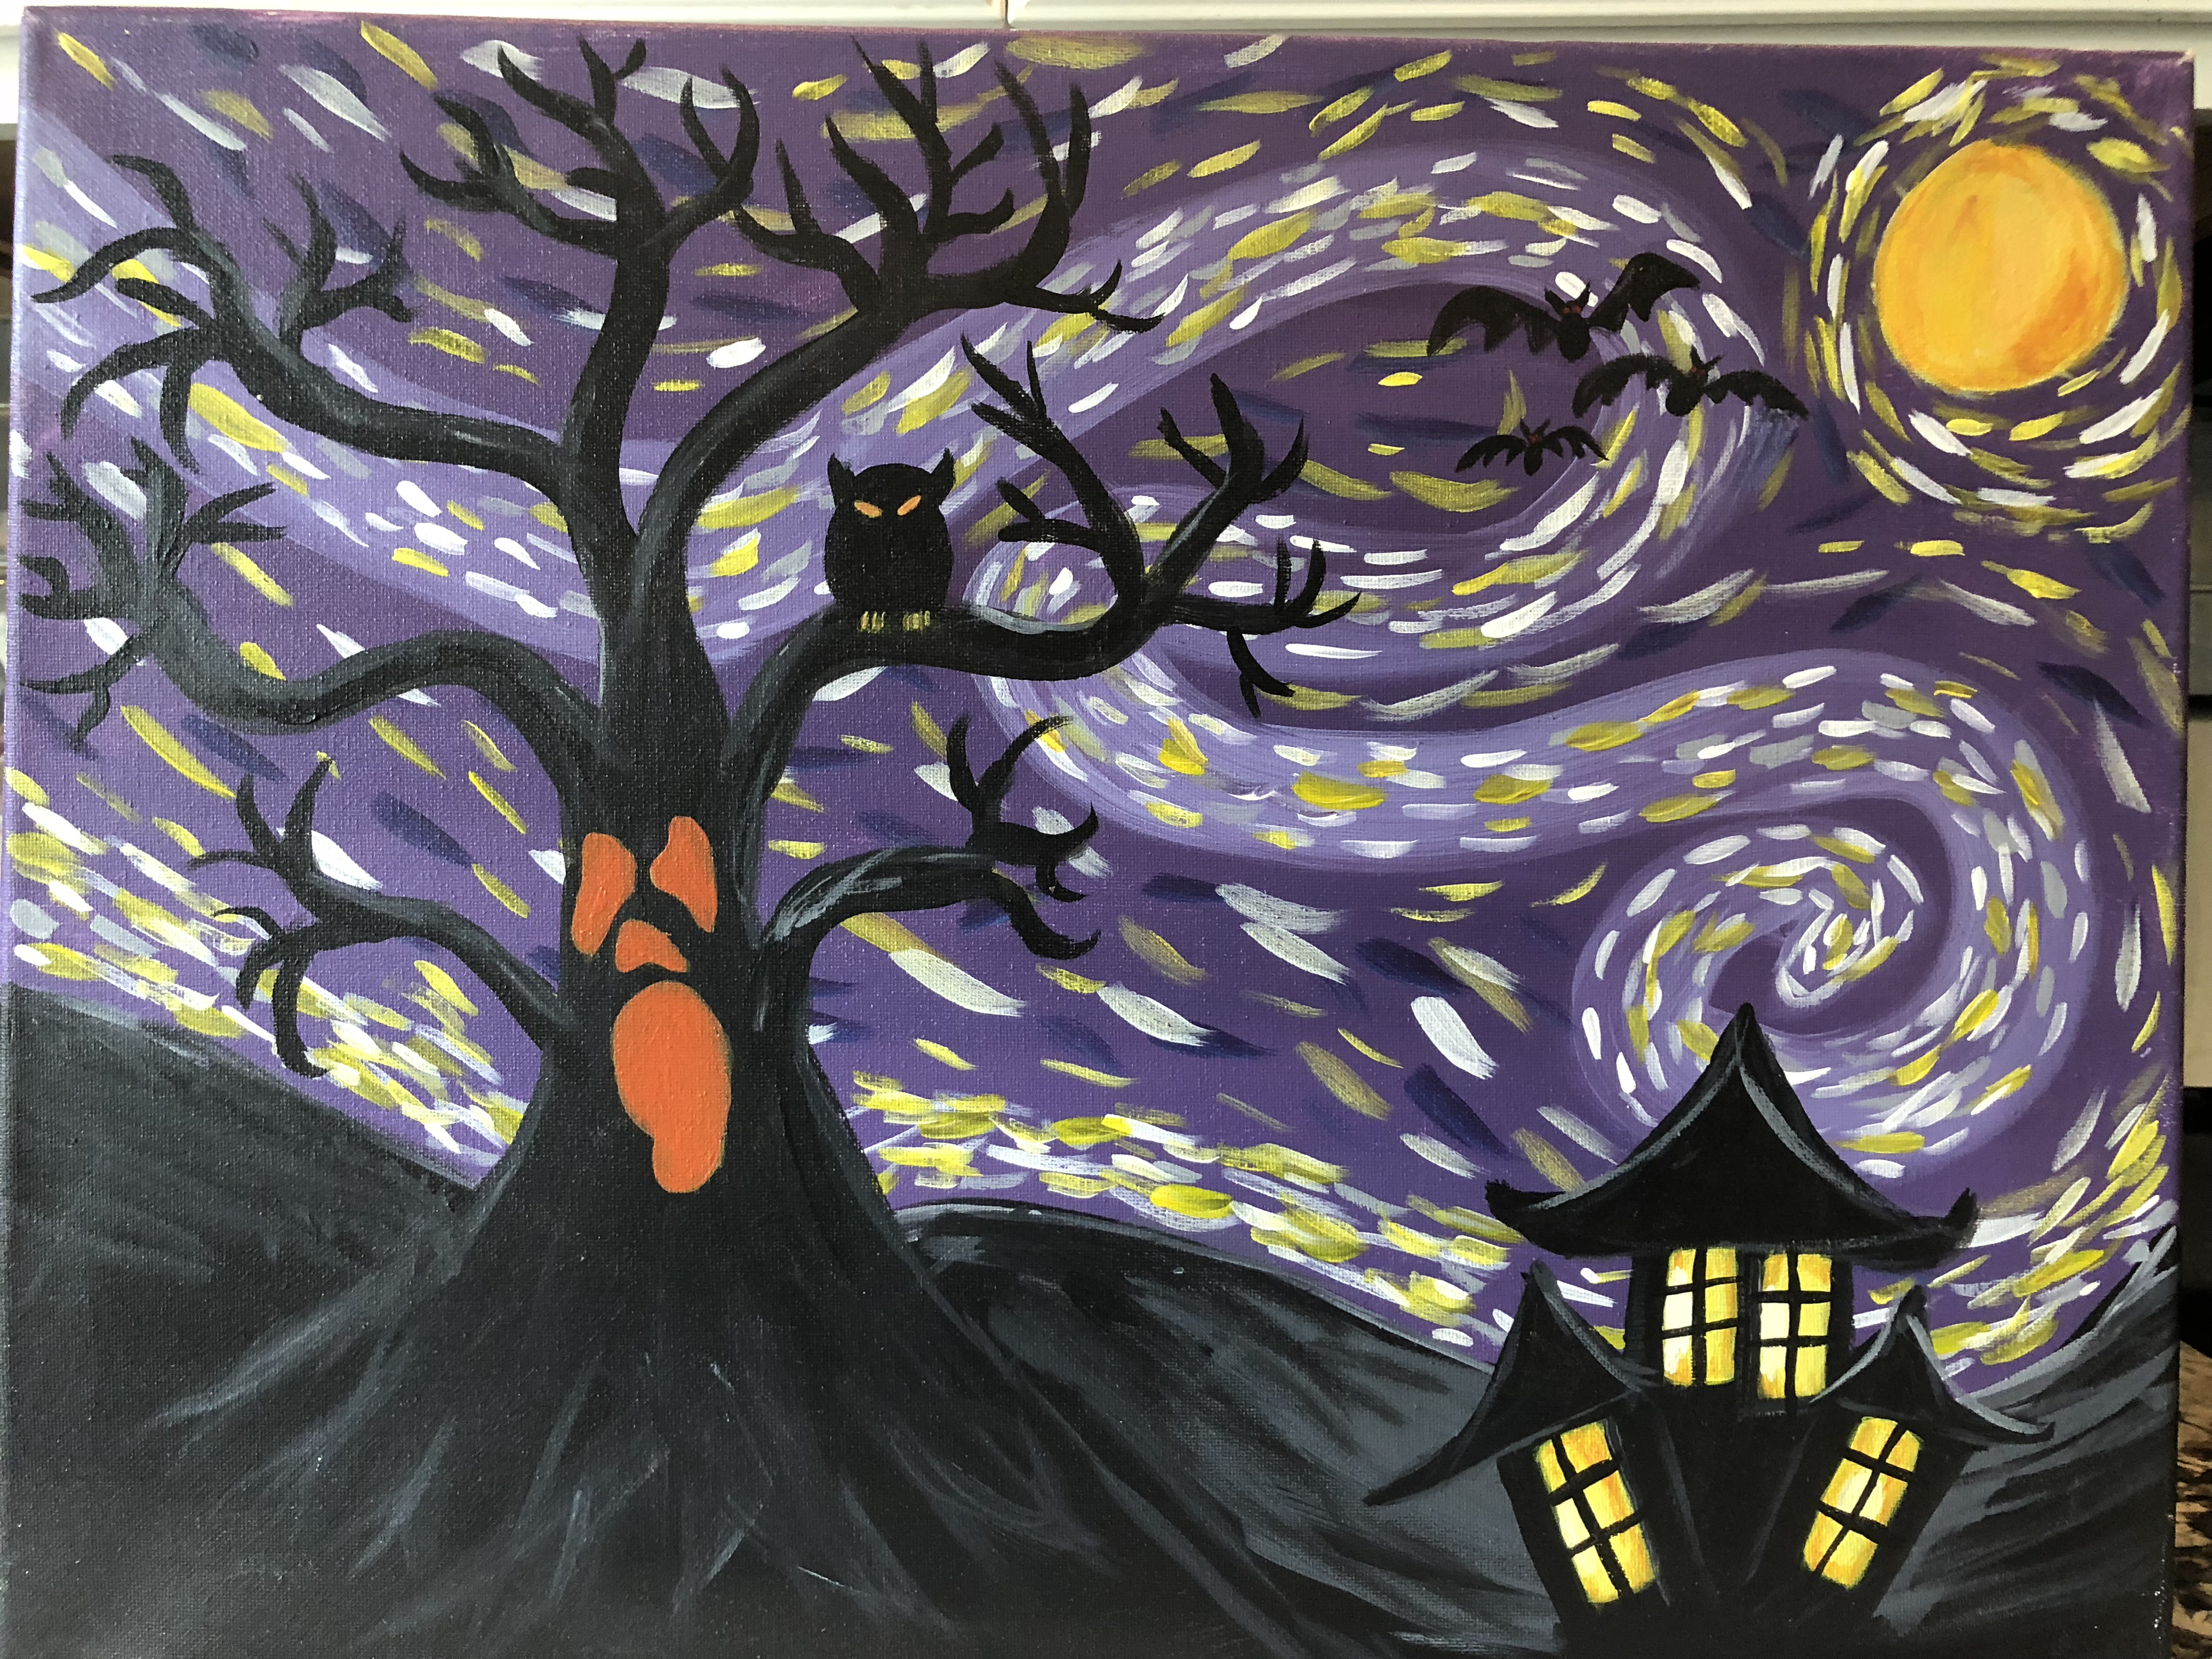 A Scary Scary Night paint nite project by Yaymaker